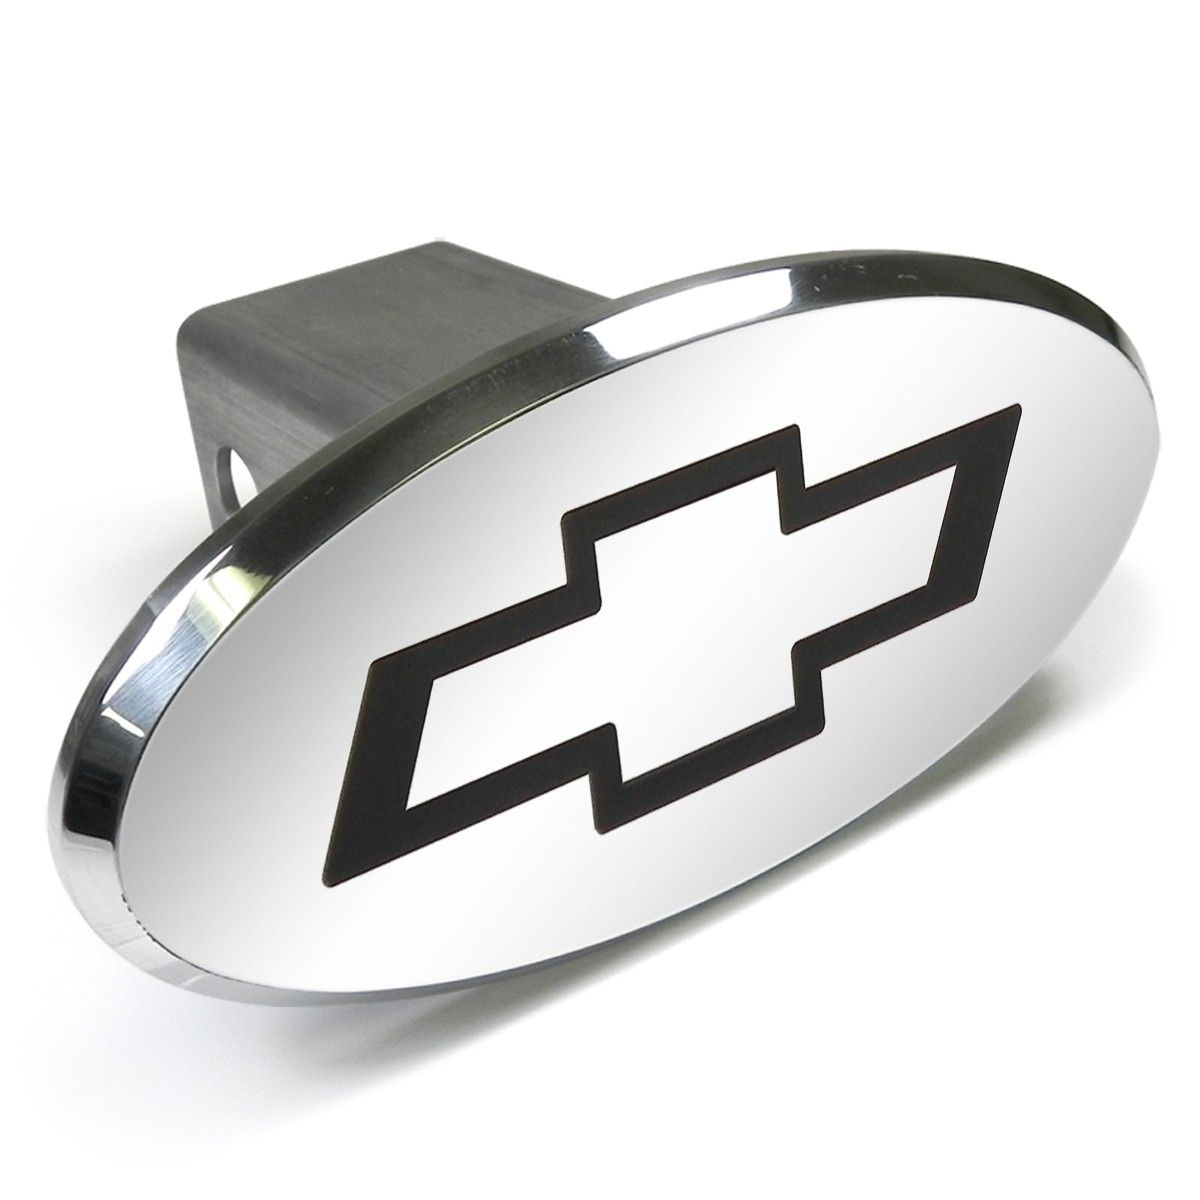 Chevrolet Bowtie Engraved Oval Chrome Aluminum Tow Hitch Cover